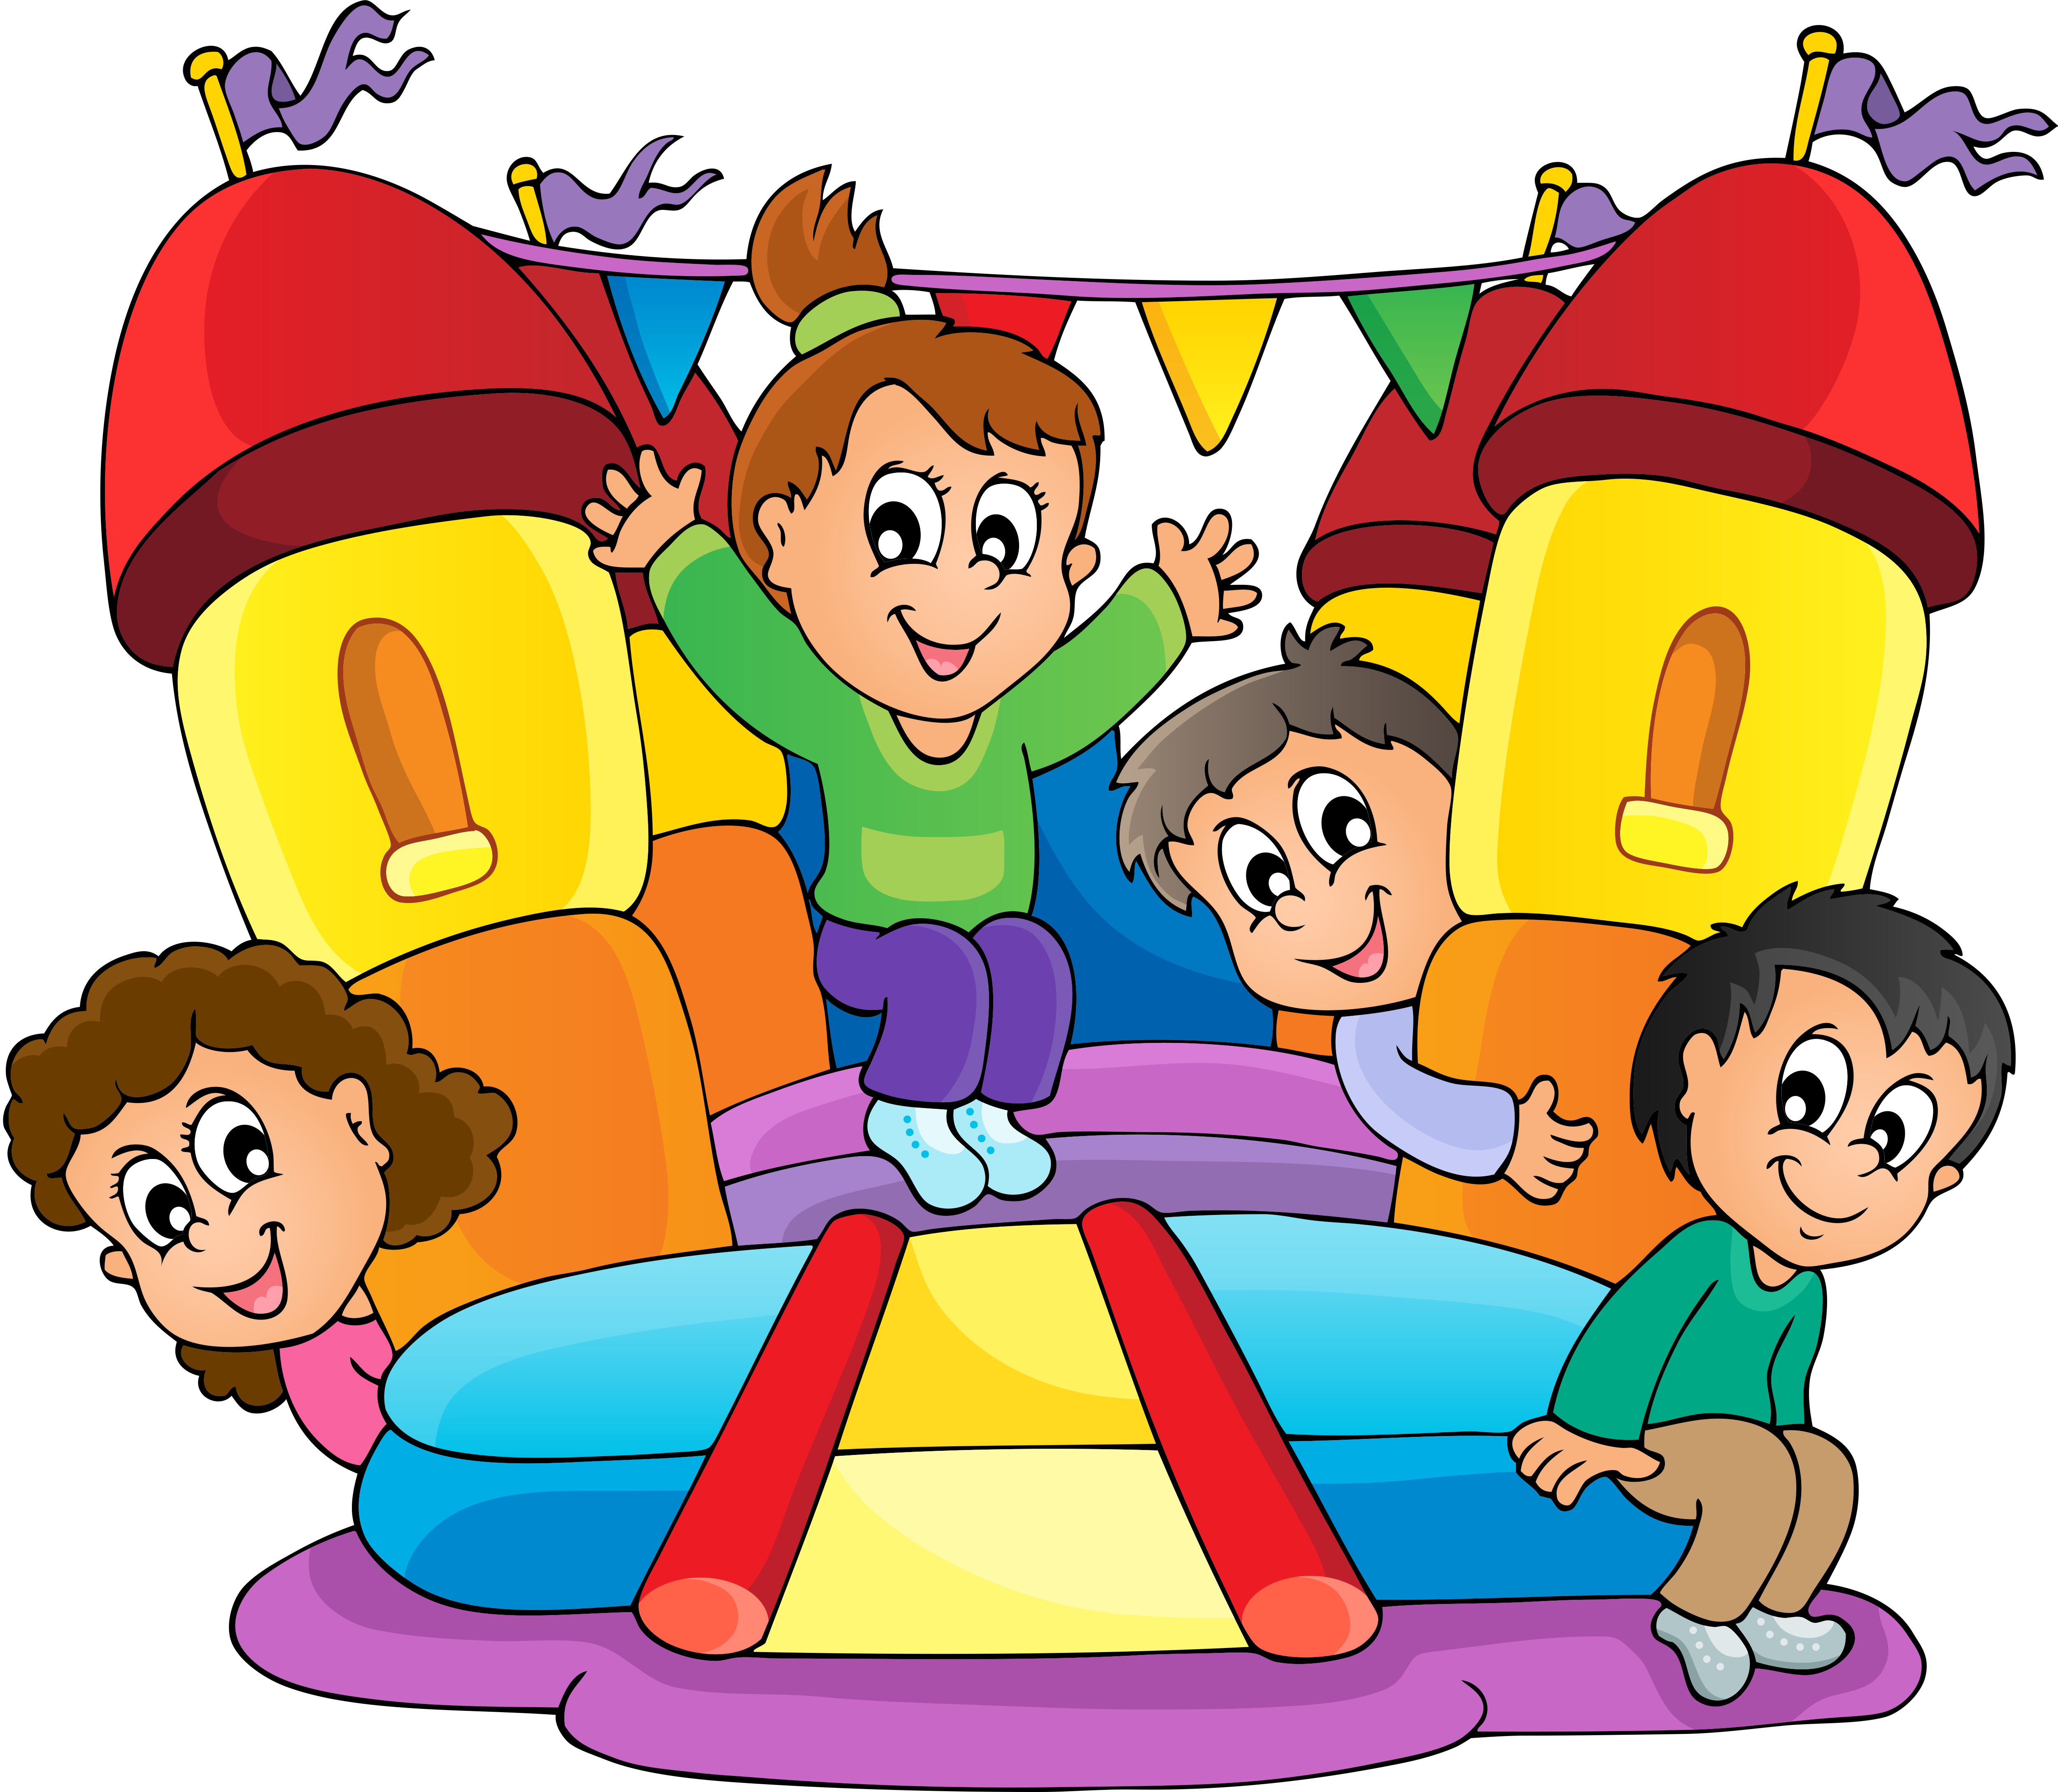 Bounce house castle clipart vector library library Pin by Kizia Mizia on dzieci-obrazki | Pinterest vector library library